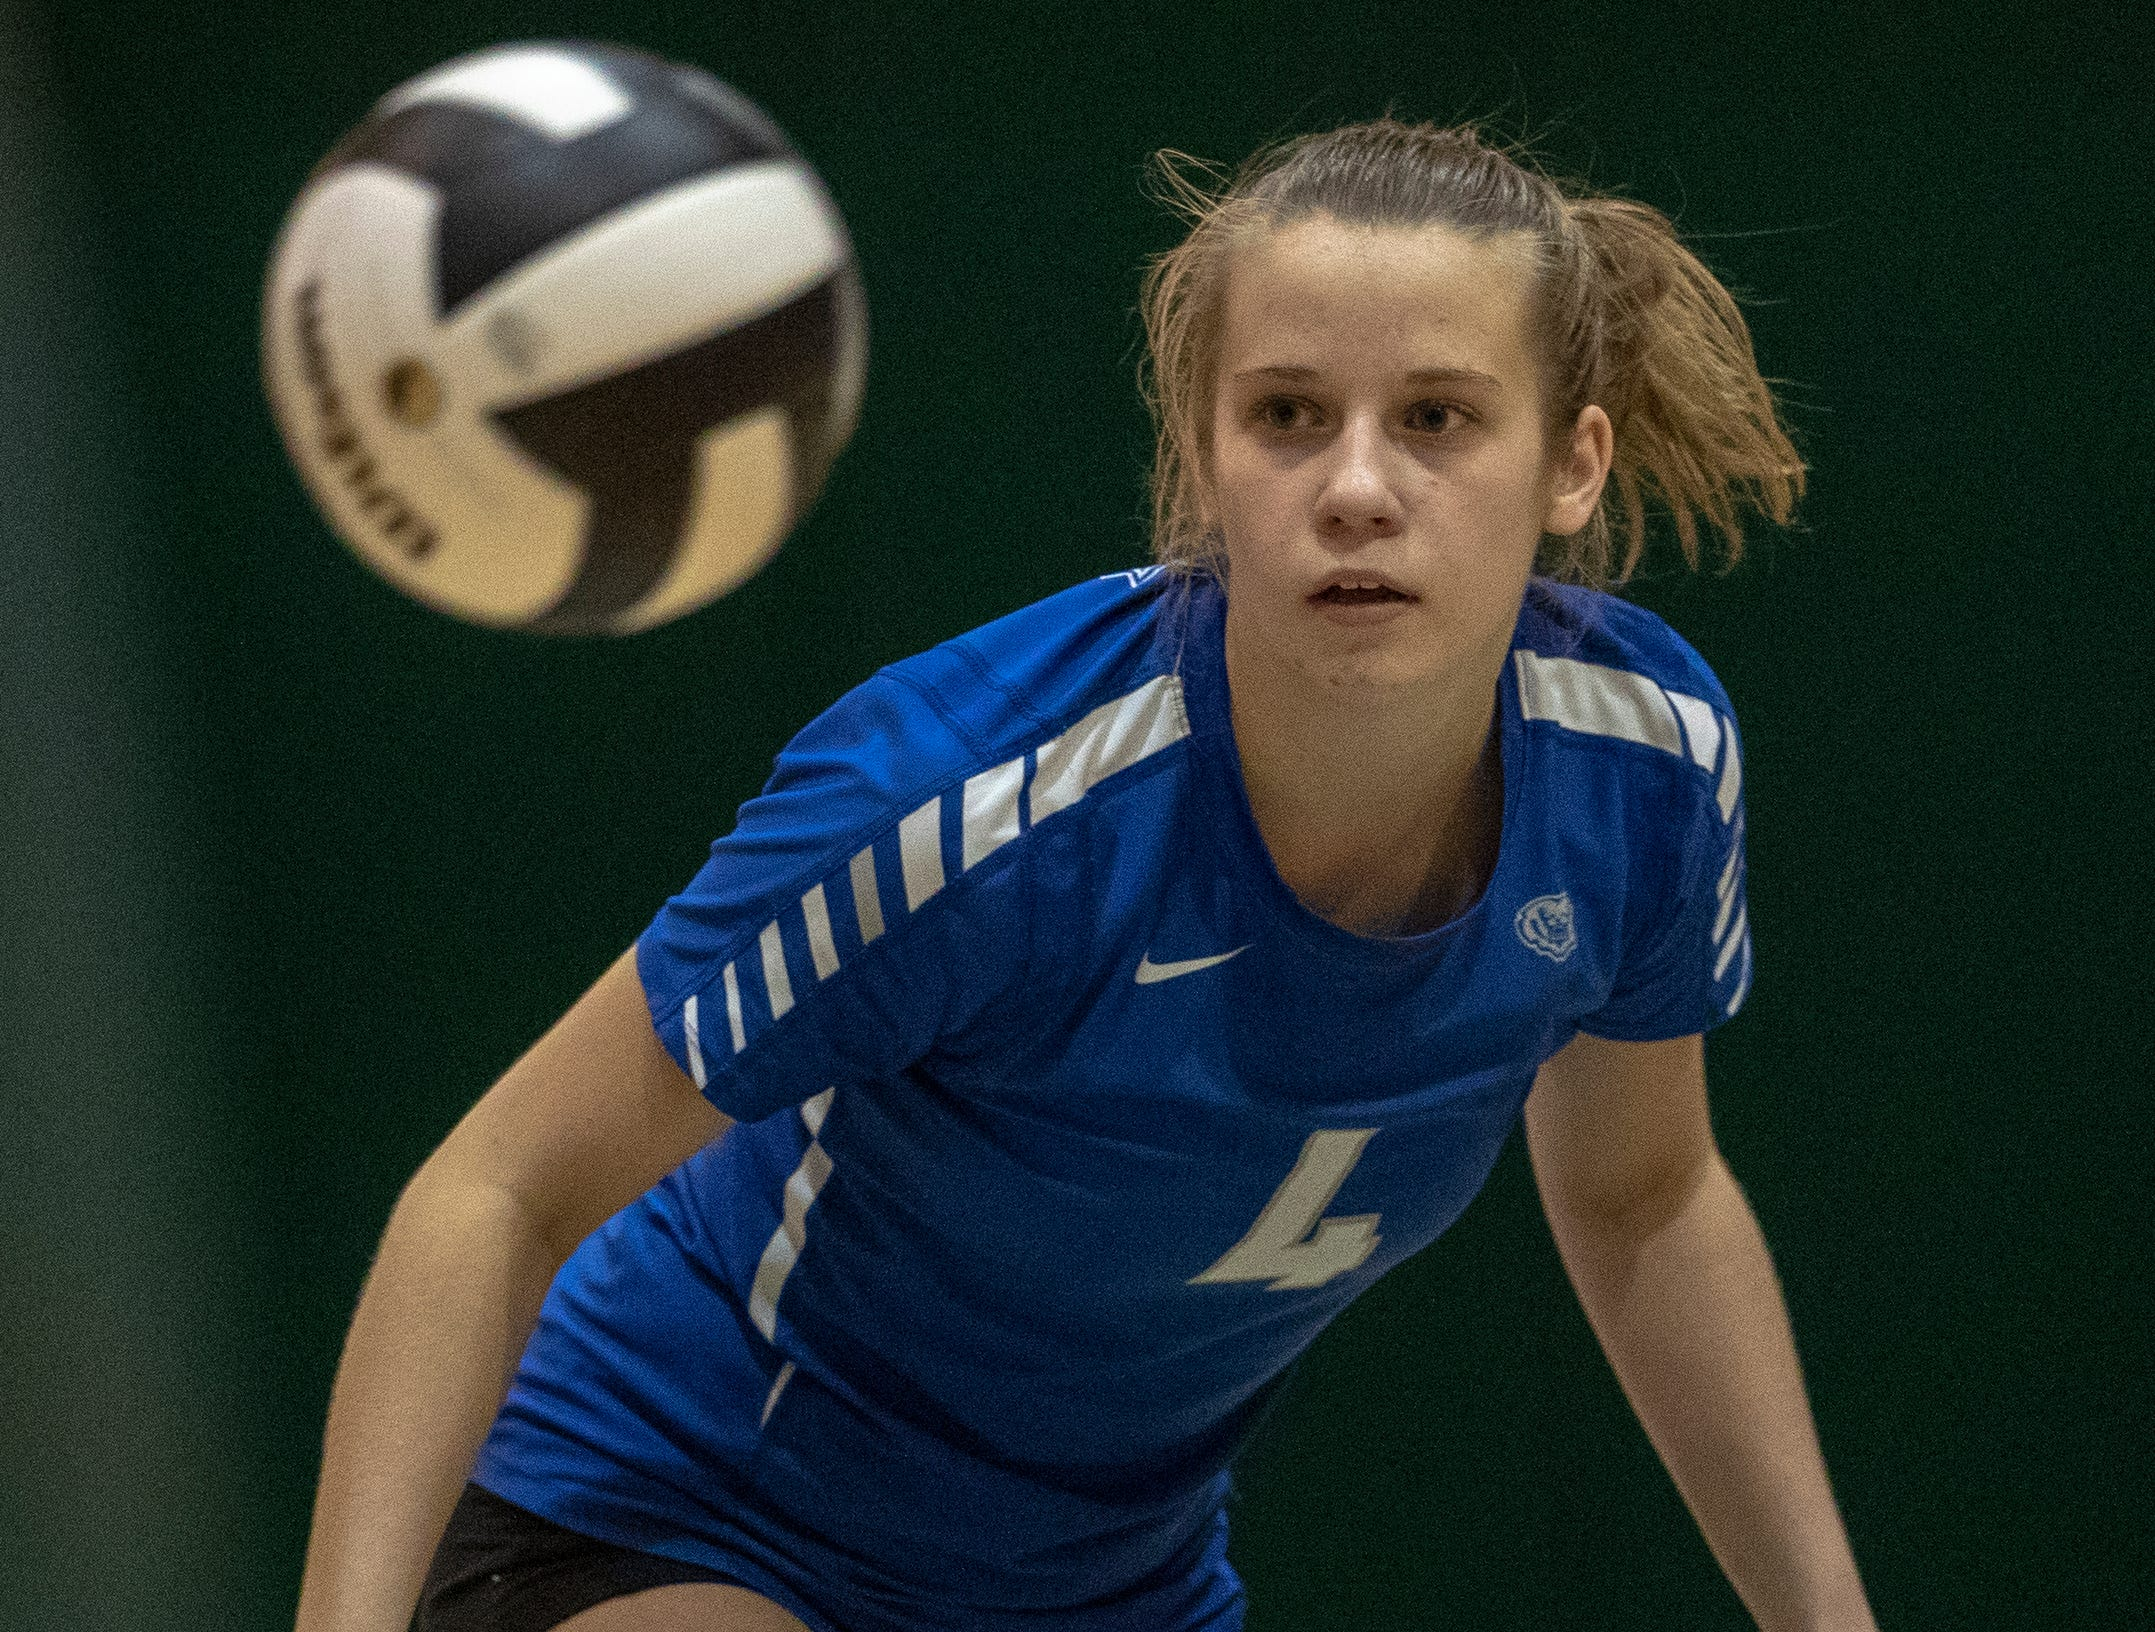 Kyla Berg of Hamilton Southeastern High School eyes a ball as they play Fishers High School, losing to FHS in three straight sets in the first round of the volleyball sectional at Westfield High School, Westfield, Thursday, Oct. 11, 2018. The win matches them up with Westfield High School for a game on Saturday morning at 11a.m.